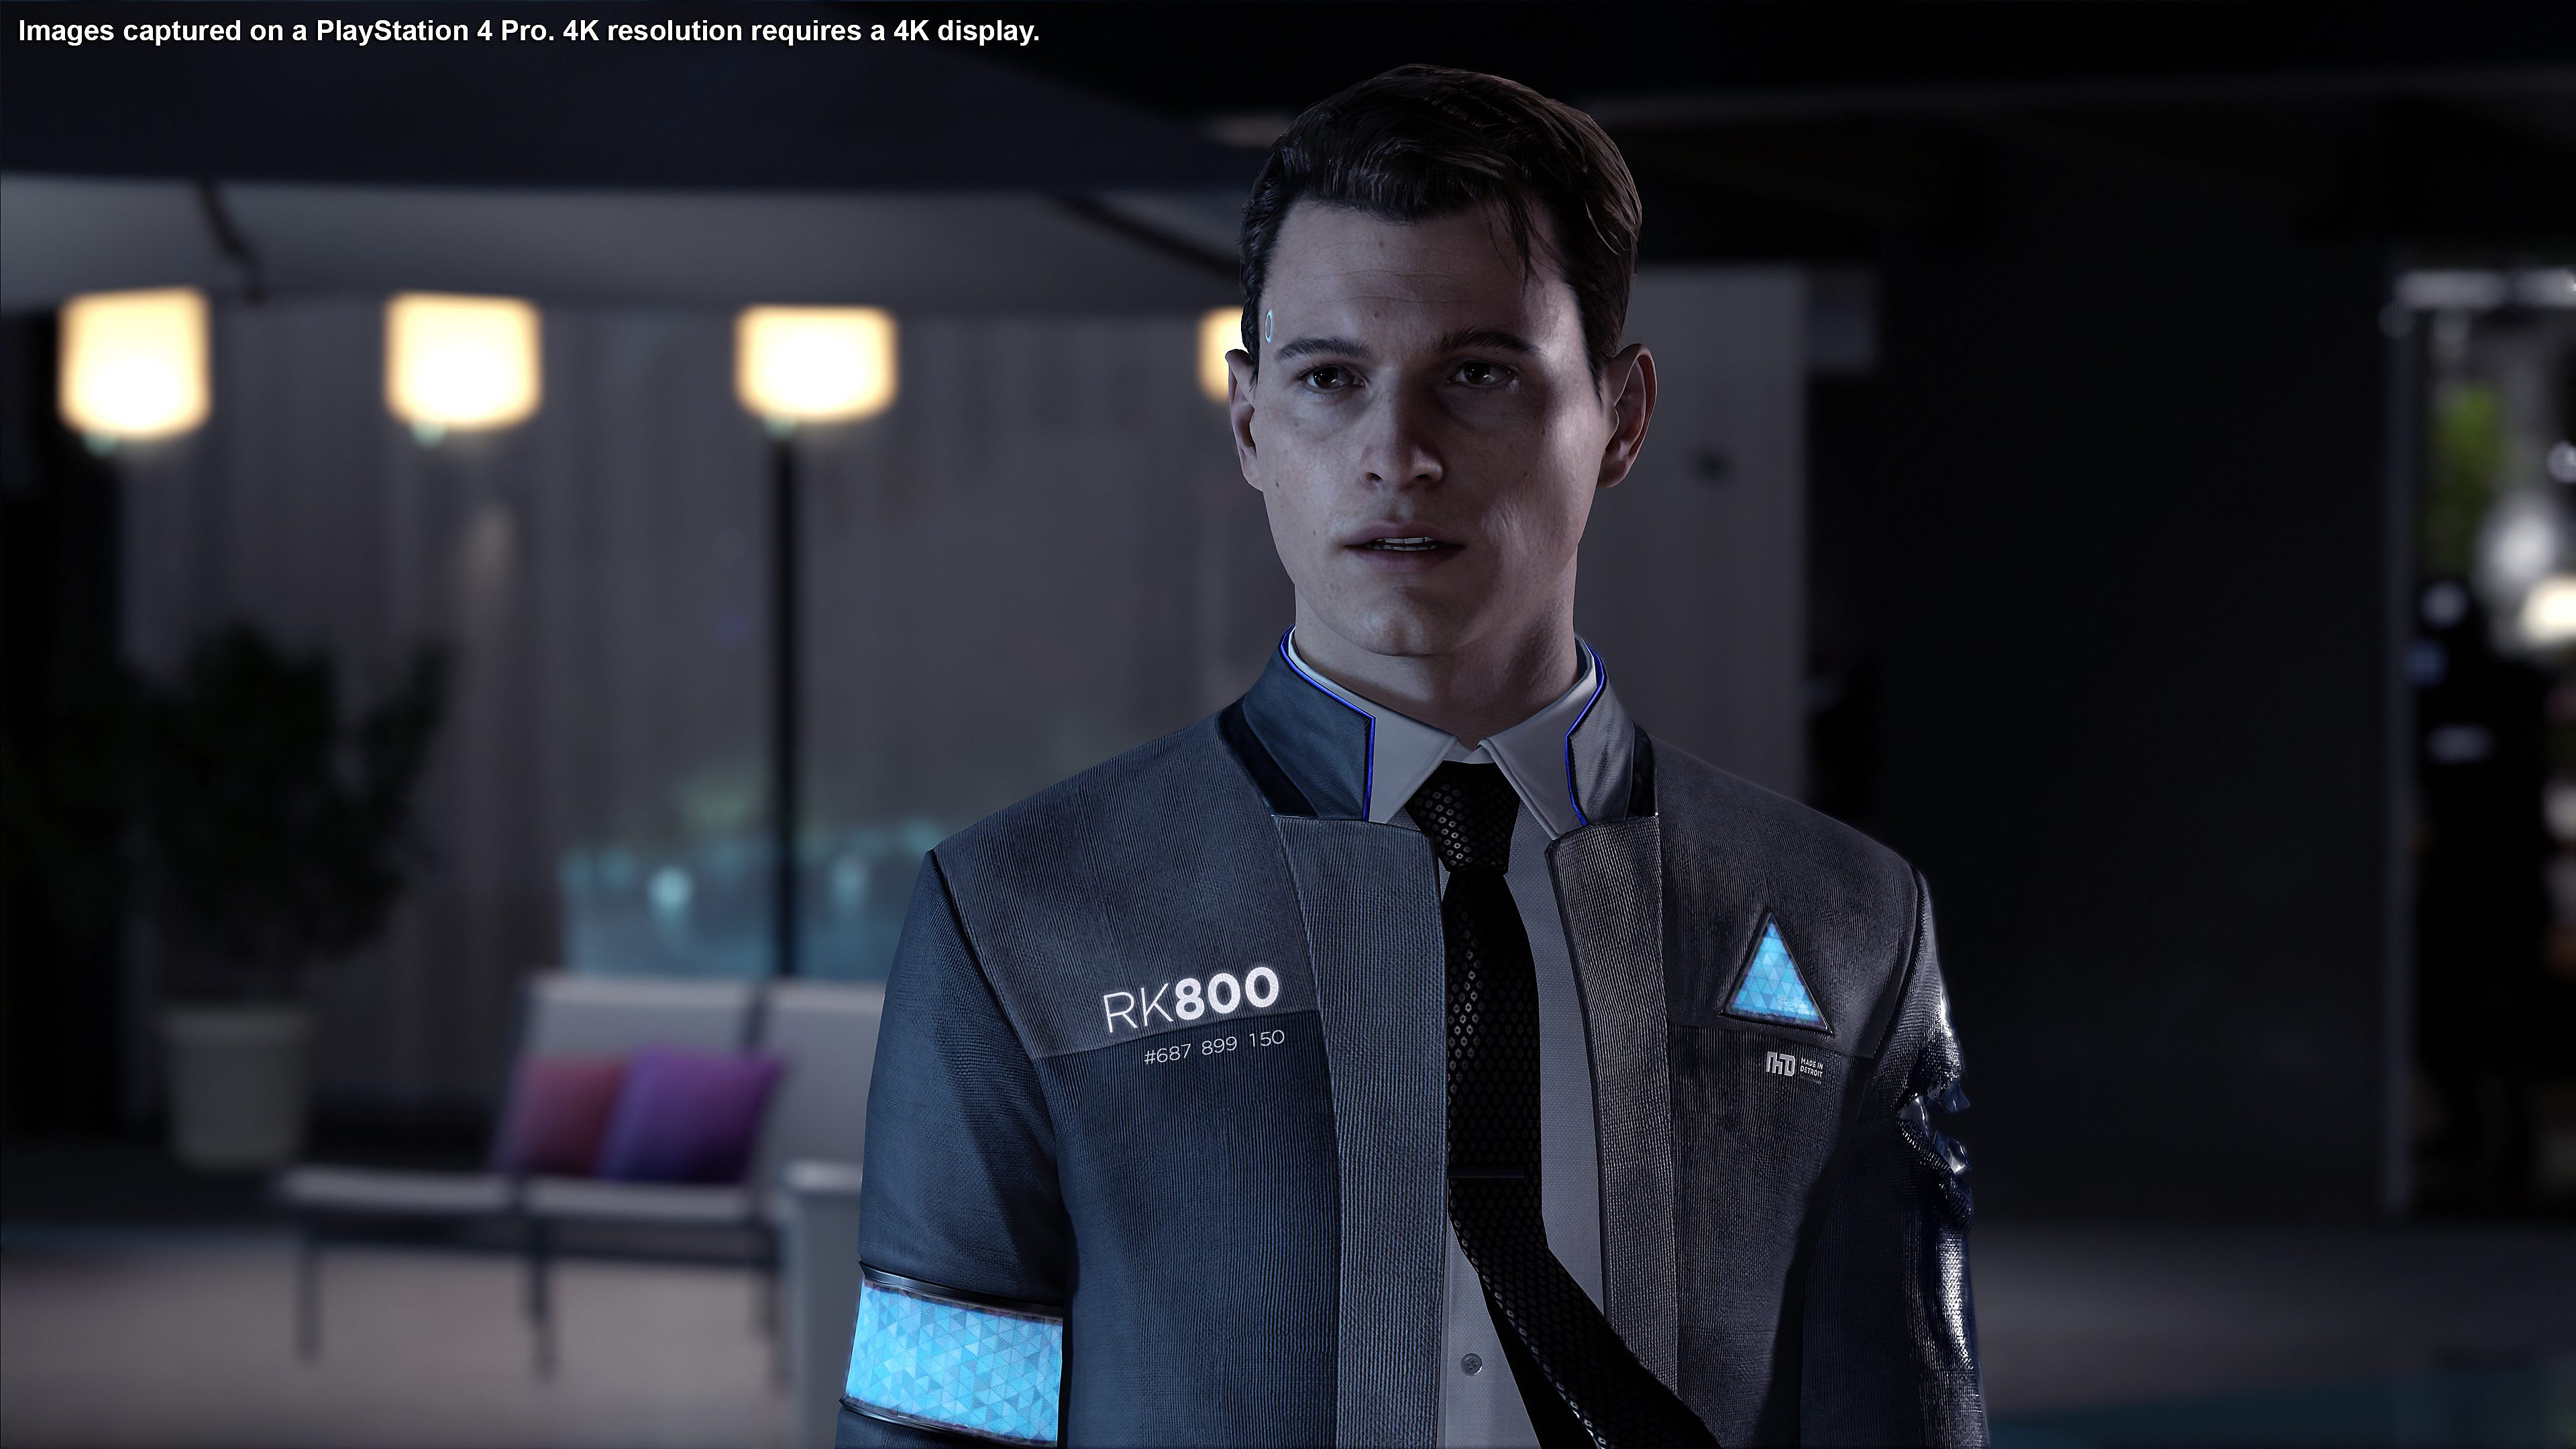 Captura de pantalla 1 de Detroit: Become Human